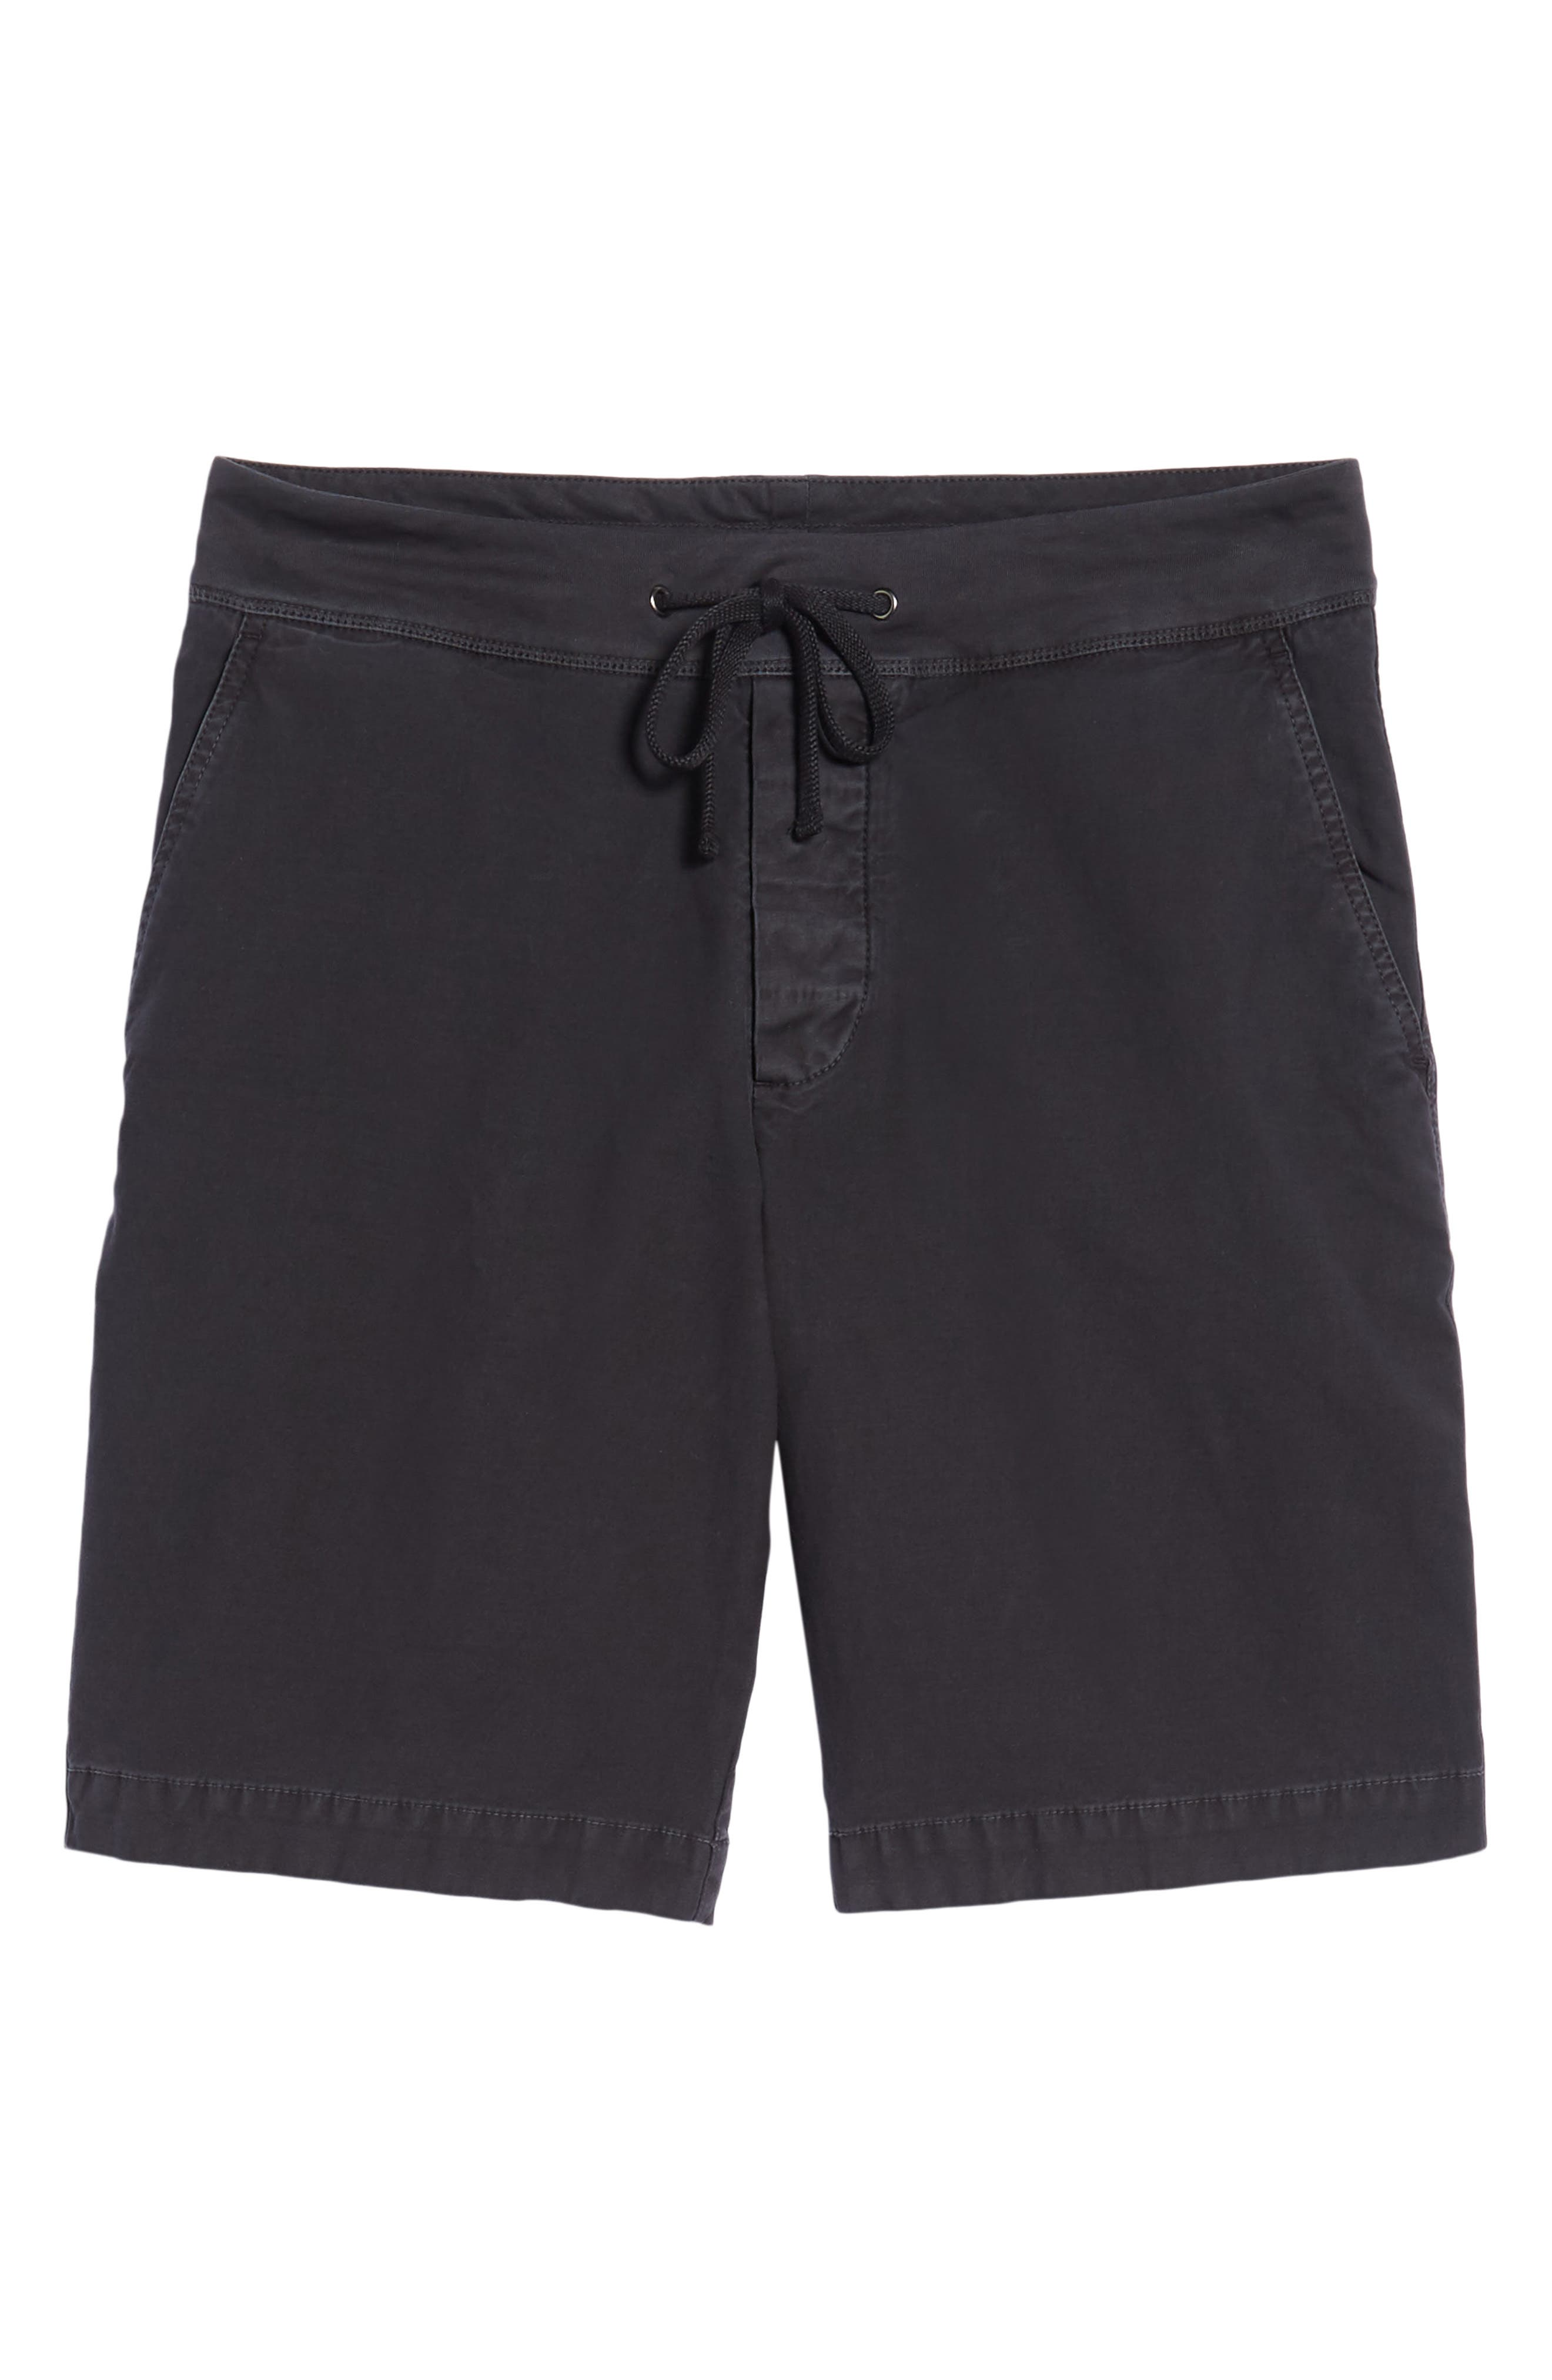 JAMES PERSE,                             Compact Stretch Cotton Shorts,                             Alternate thumbnail 6, color,                             020